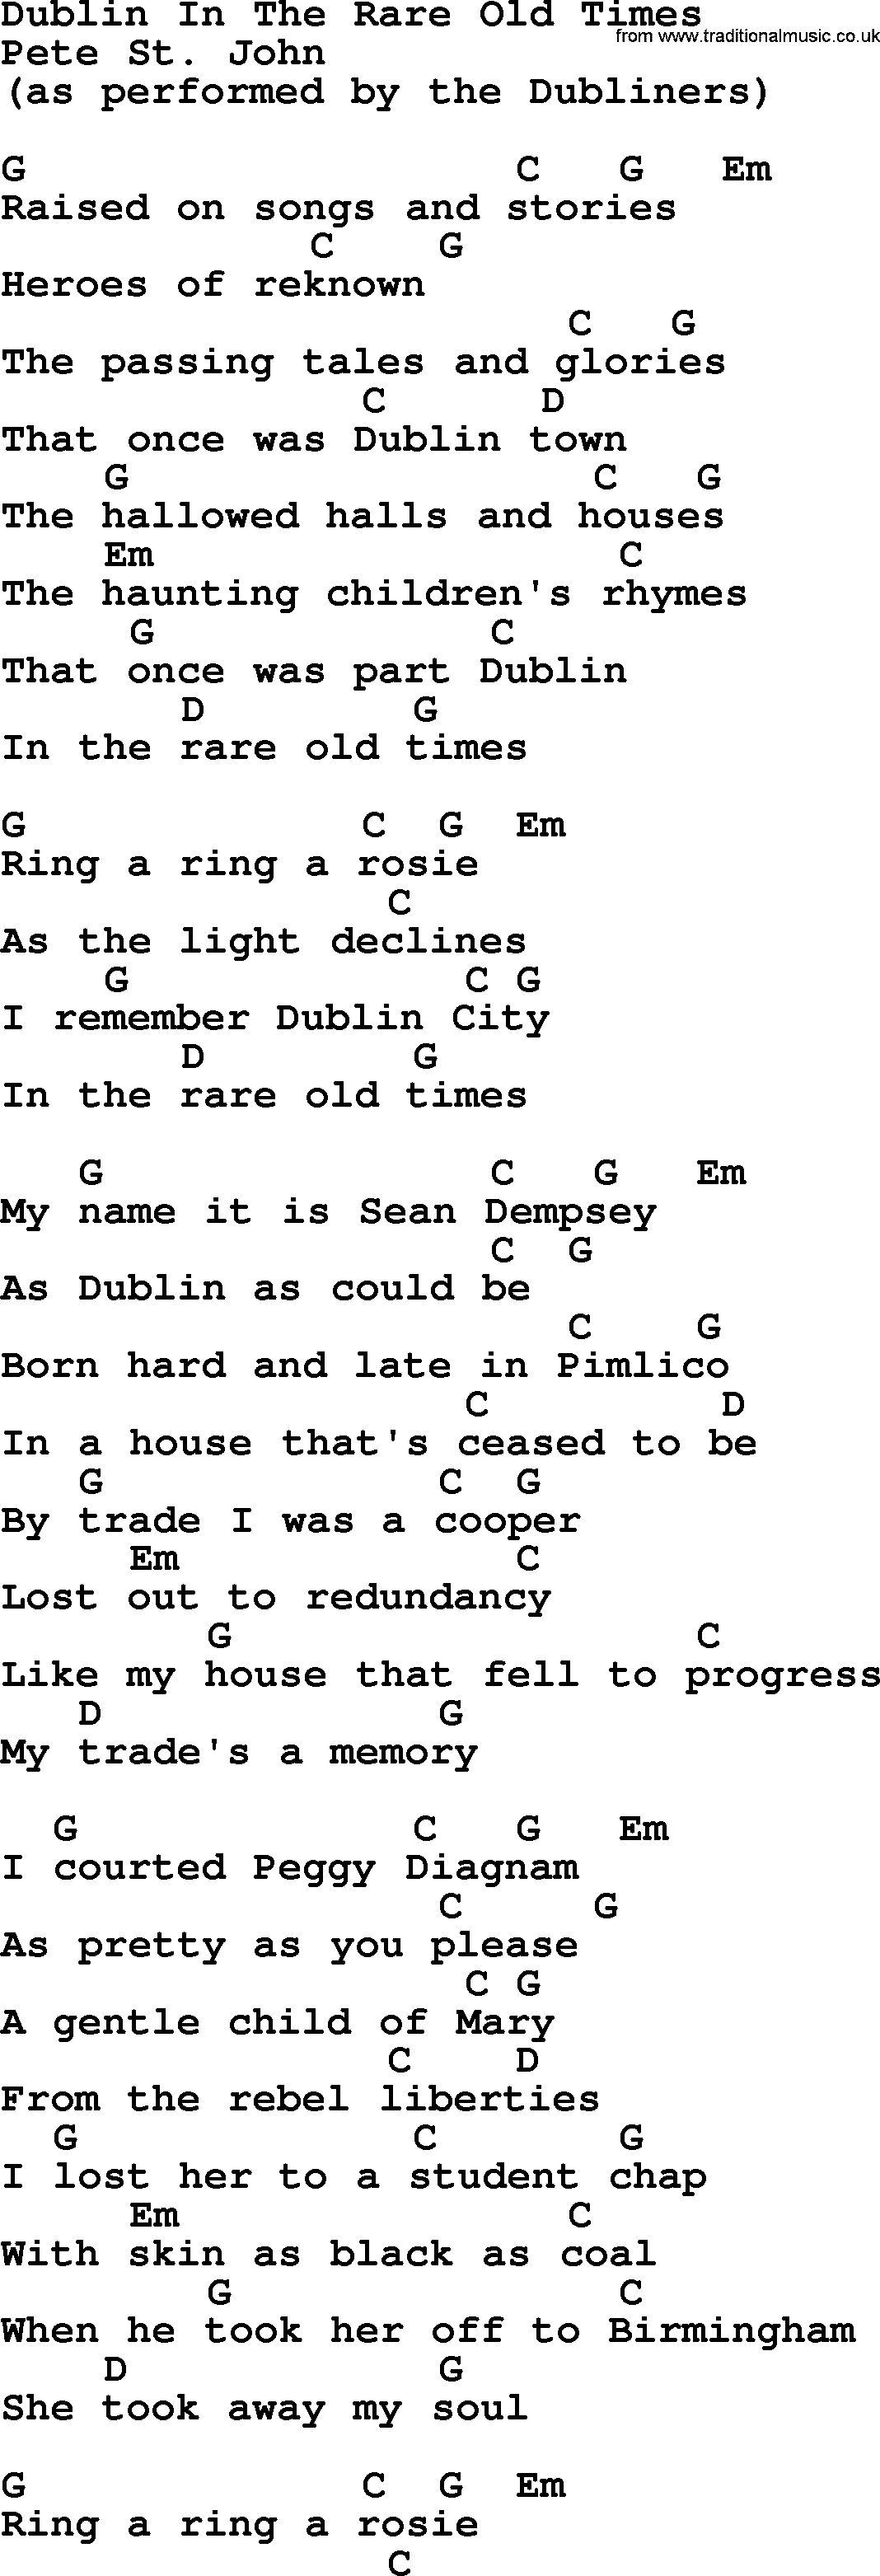 Dublin in the rare old times by the dubliners song lyrics and chords the dubliners song dublin in the rare old times lyrics and chords hexwebz Gallery